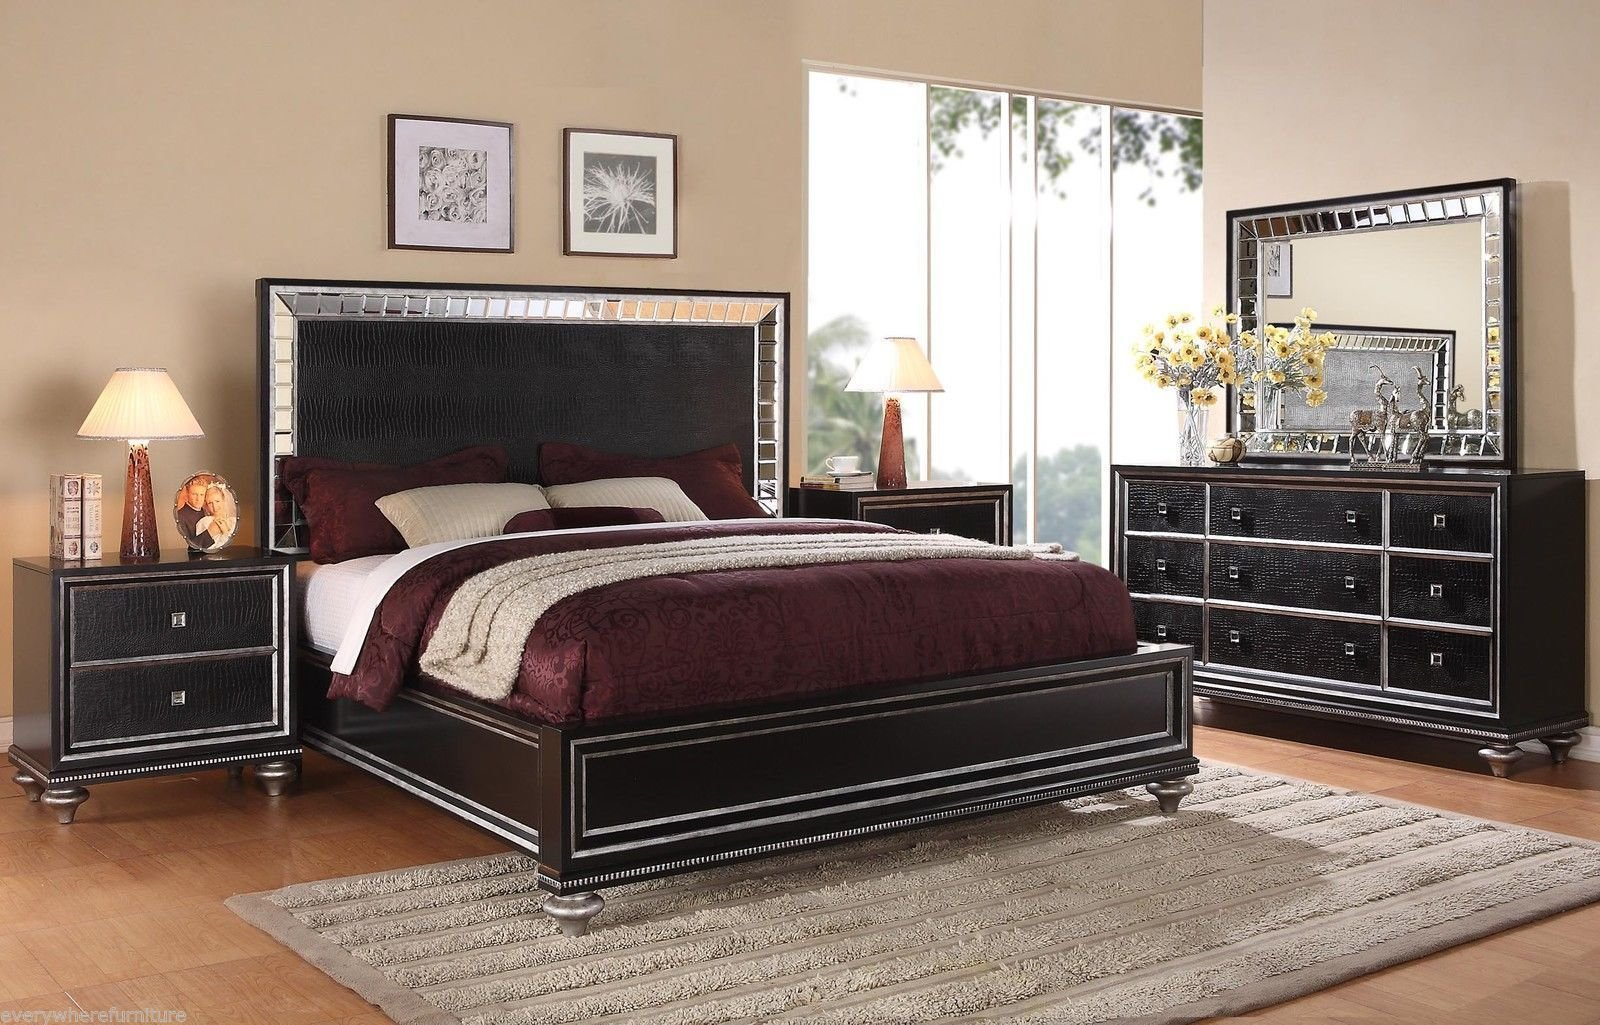 Best Wynwood Glam Black Mirrored King Size Mansion Bed Bedroom With Pictures